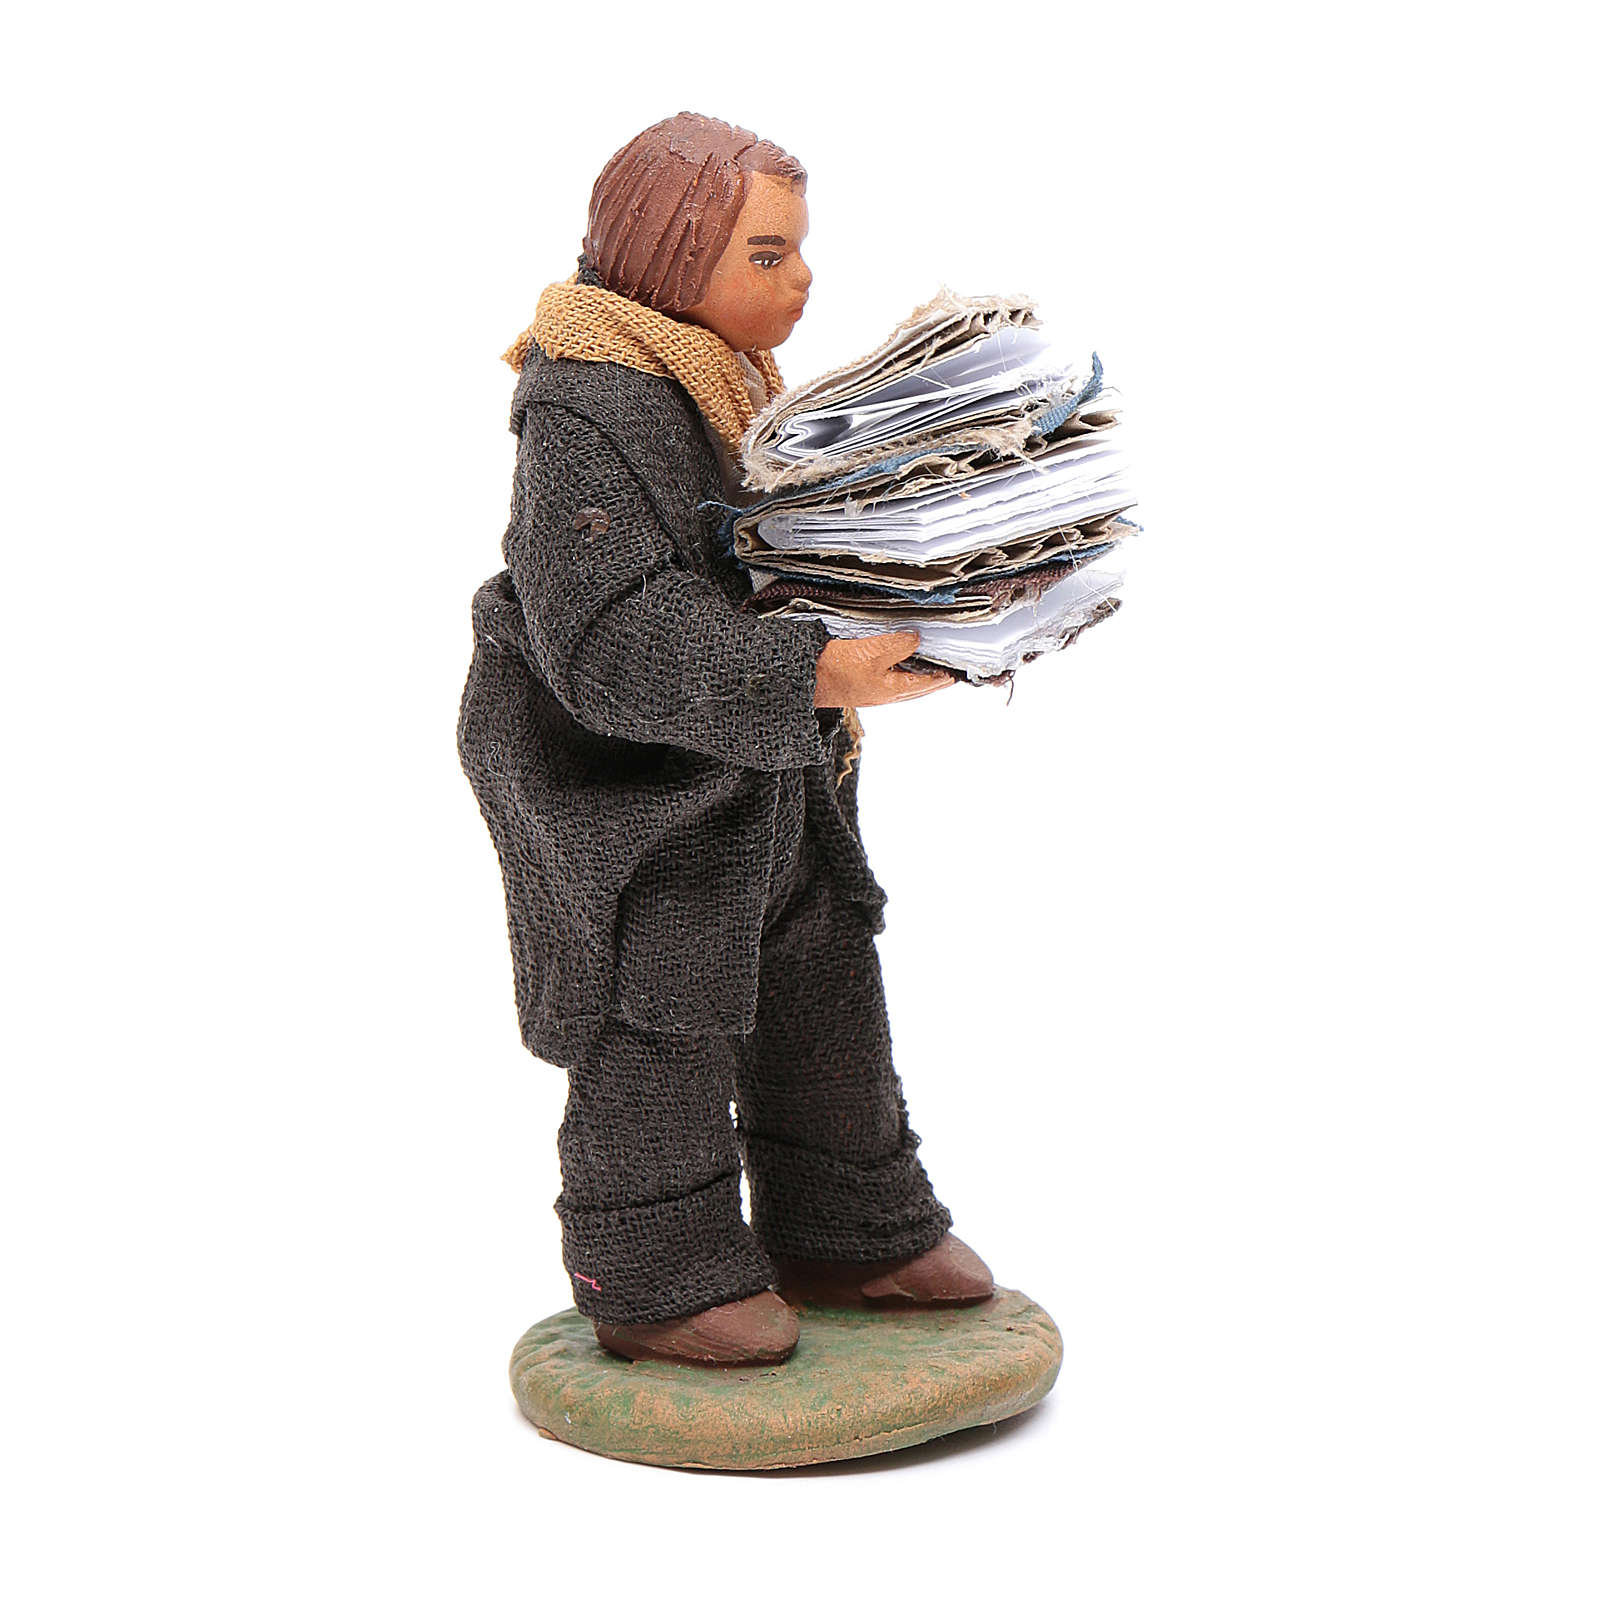 Man carryin books 10cm, Neapolitan Nativity figurine 4